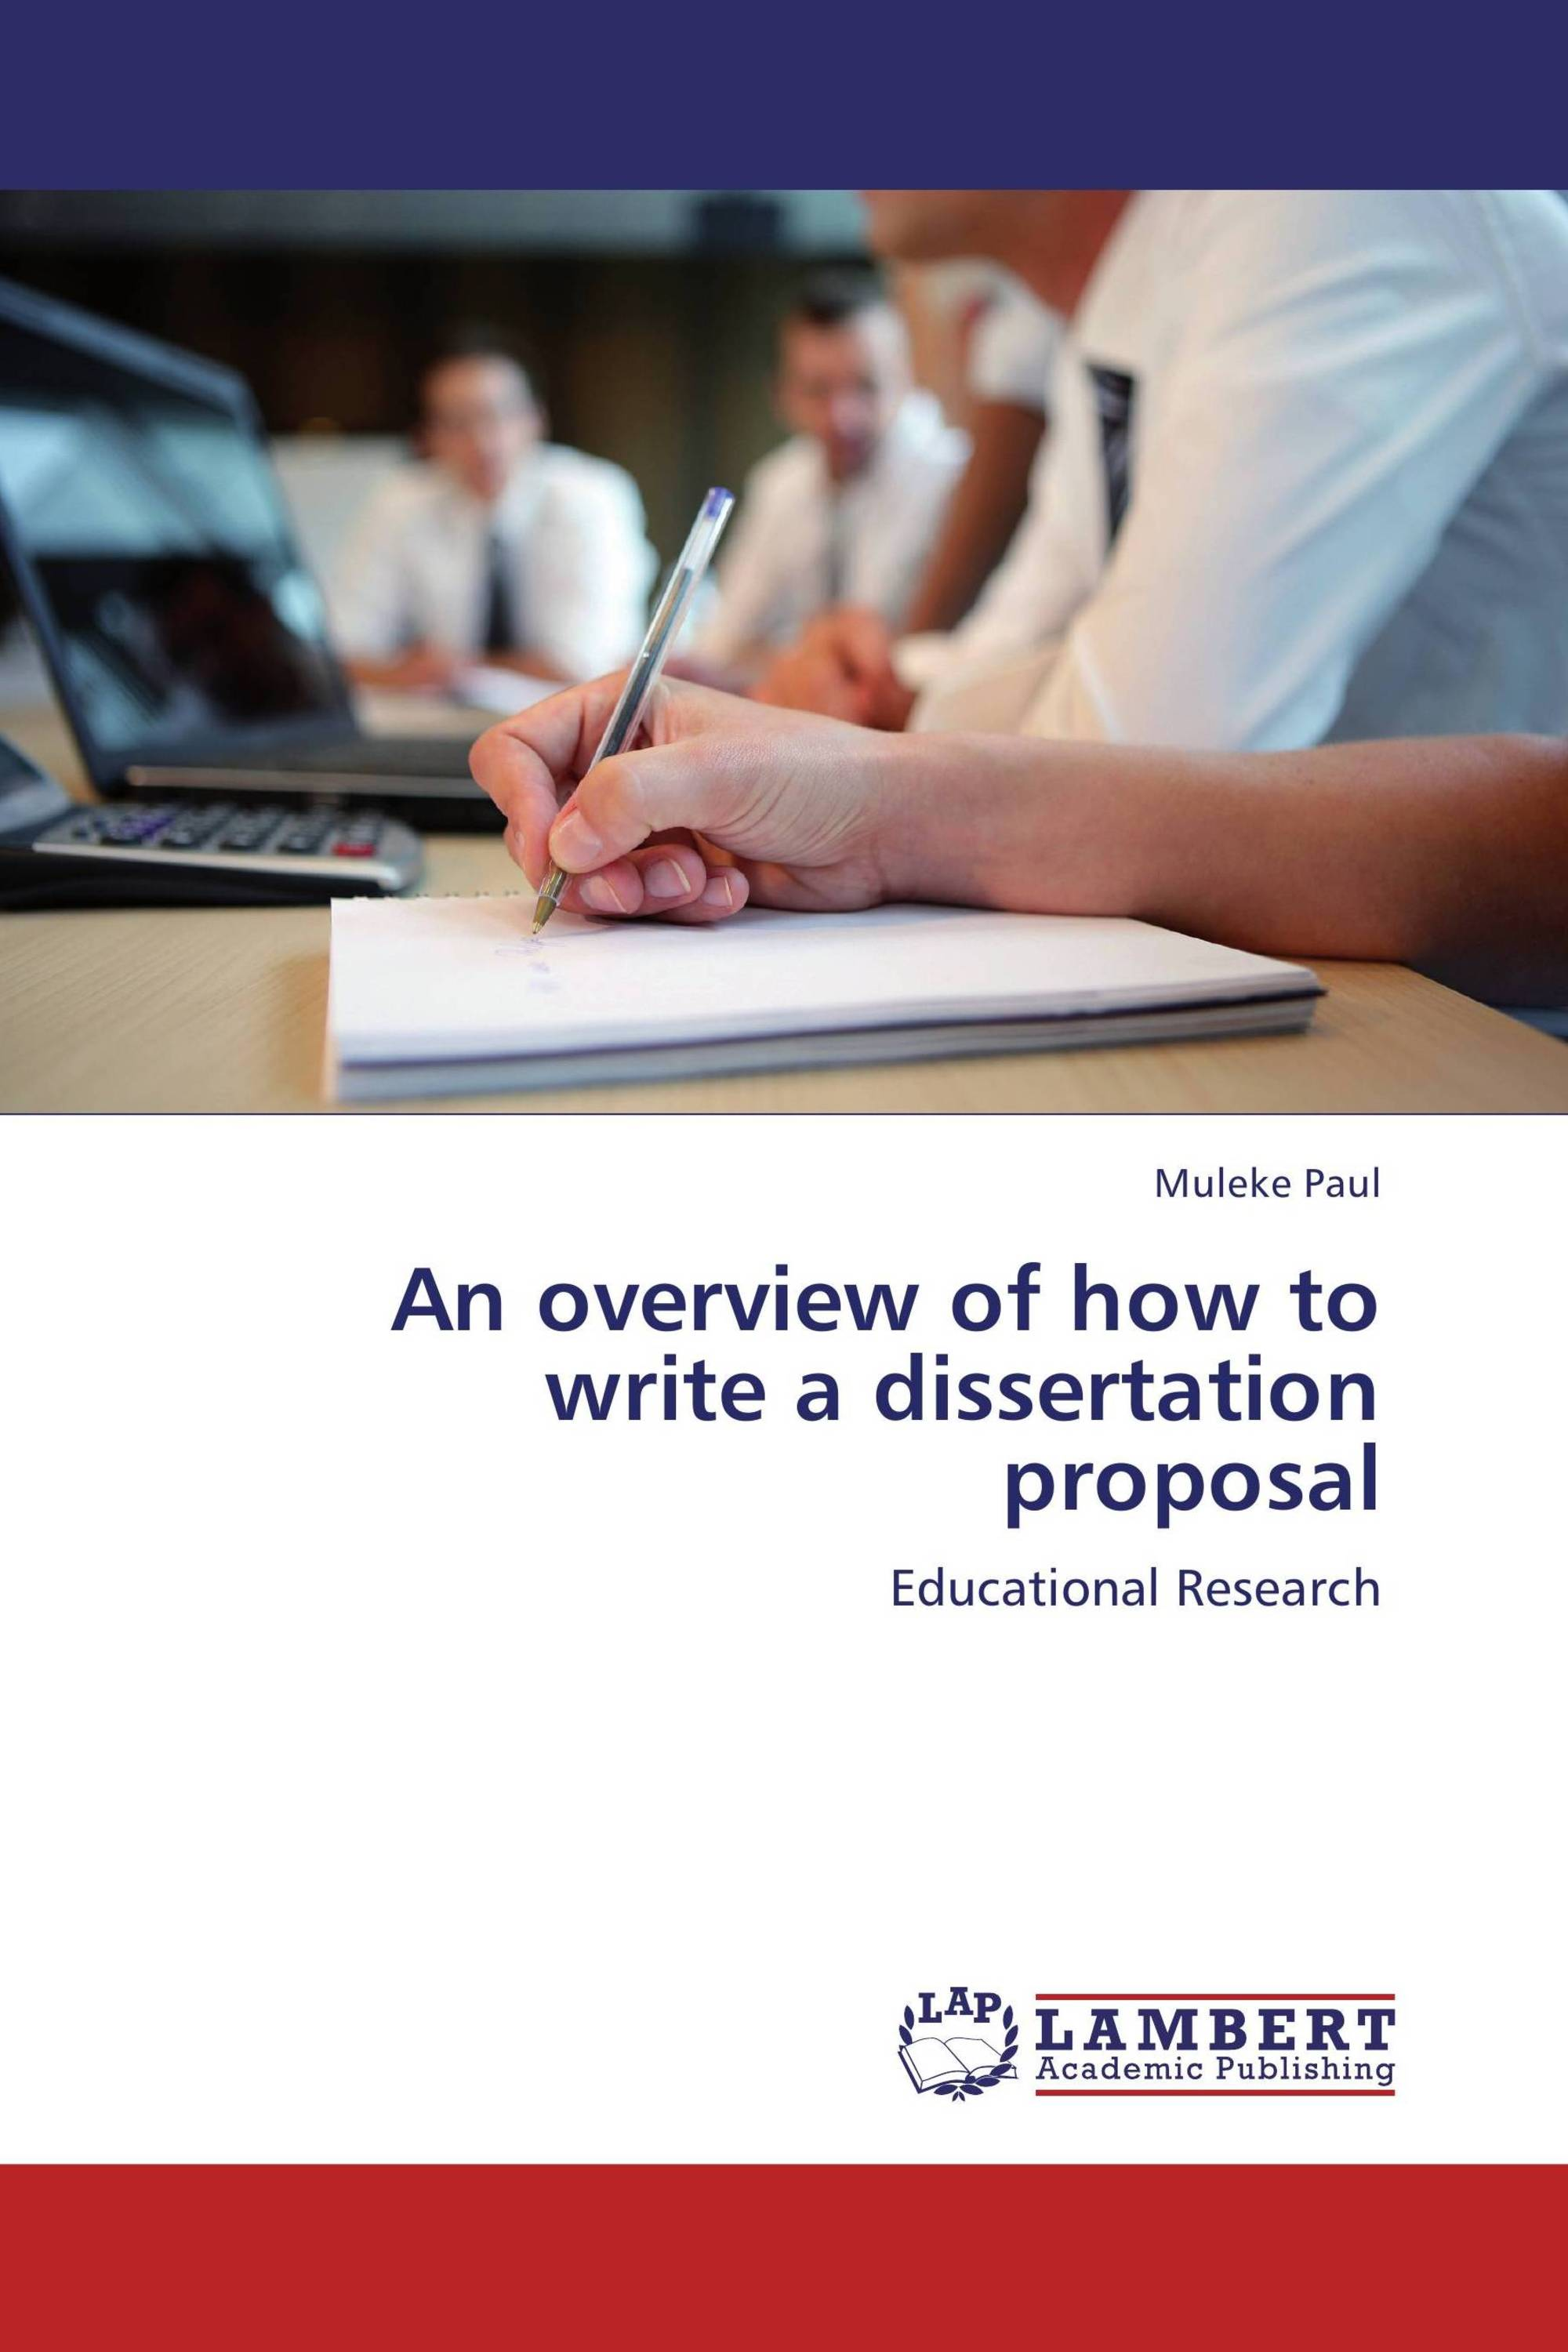 education dissertation proposal